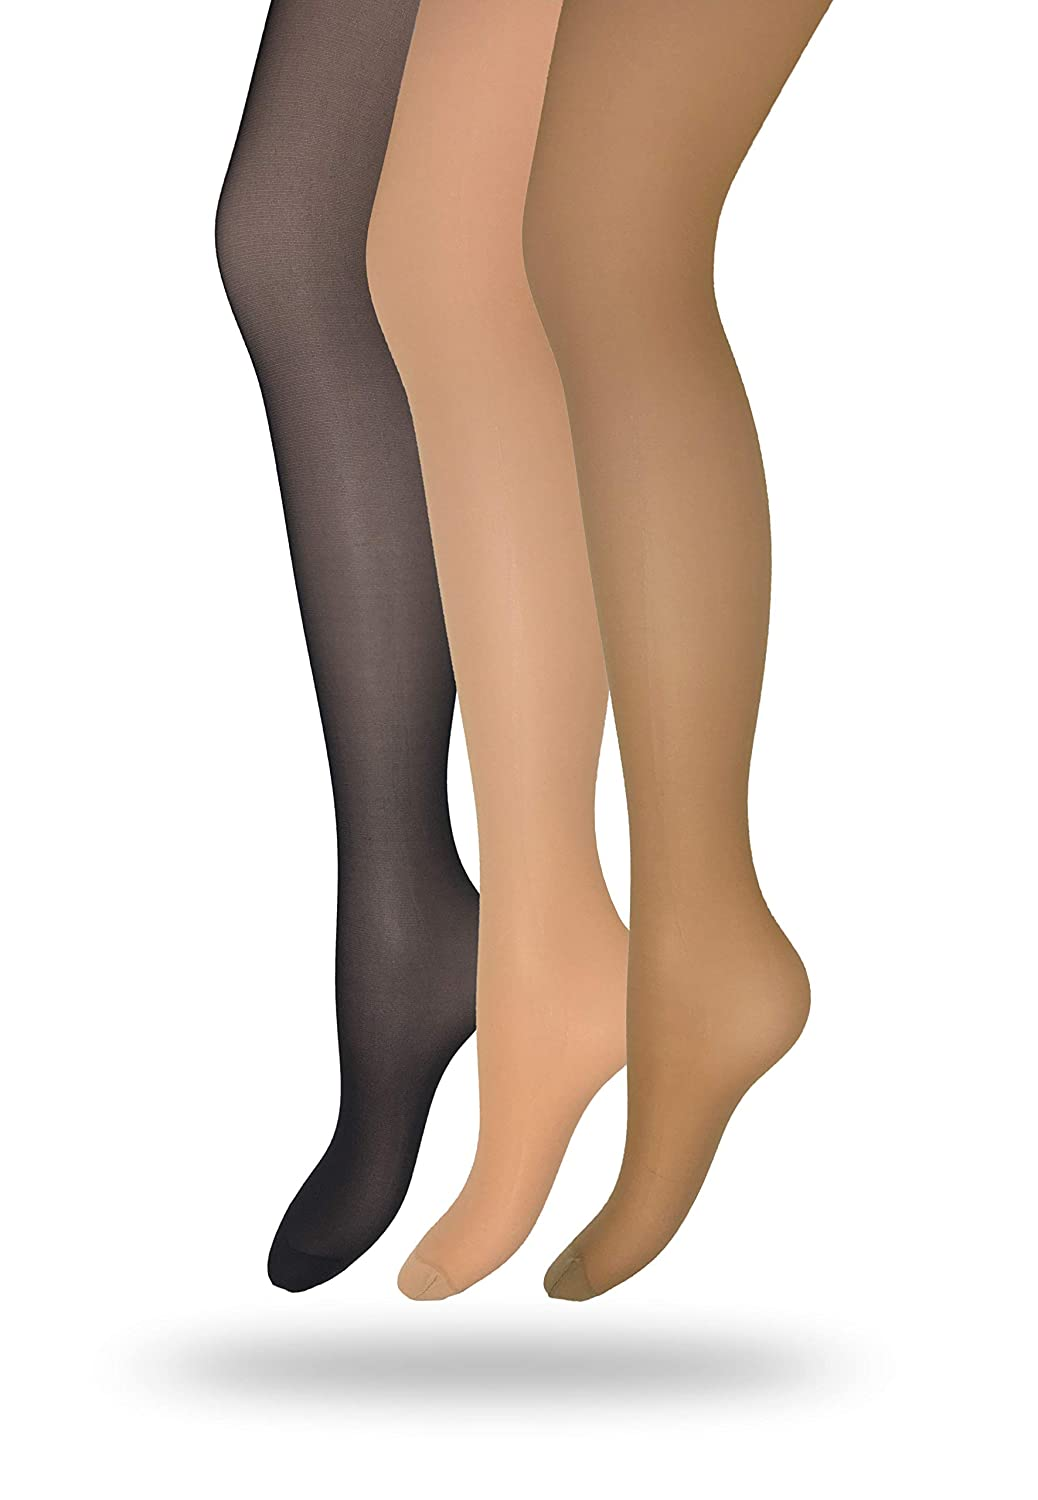 8ec4bfd6aca Eedor Women s 1 Pack Silky Control Top Reinforced Toe Sheer Pantyhose  Coffee 1 Pack coffee US A B (4 9